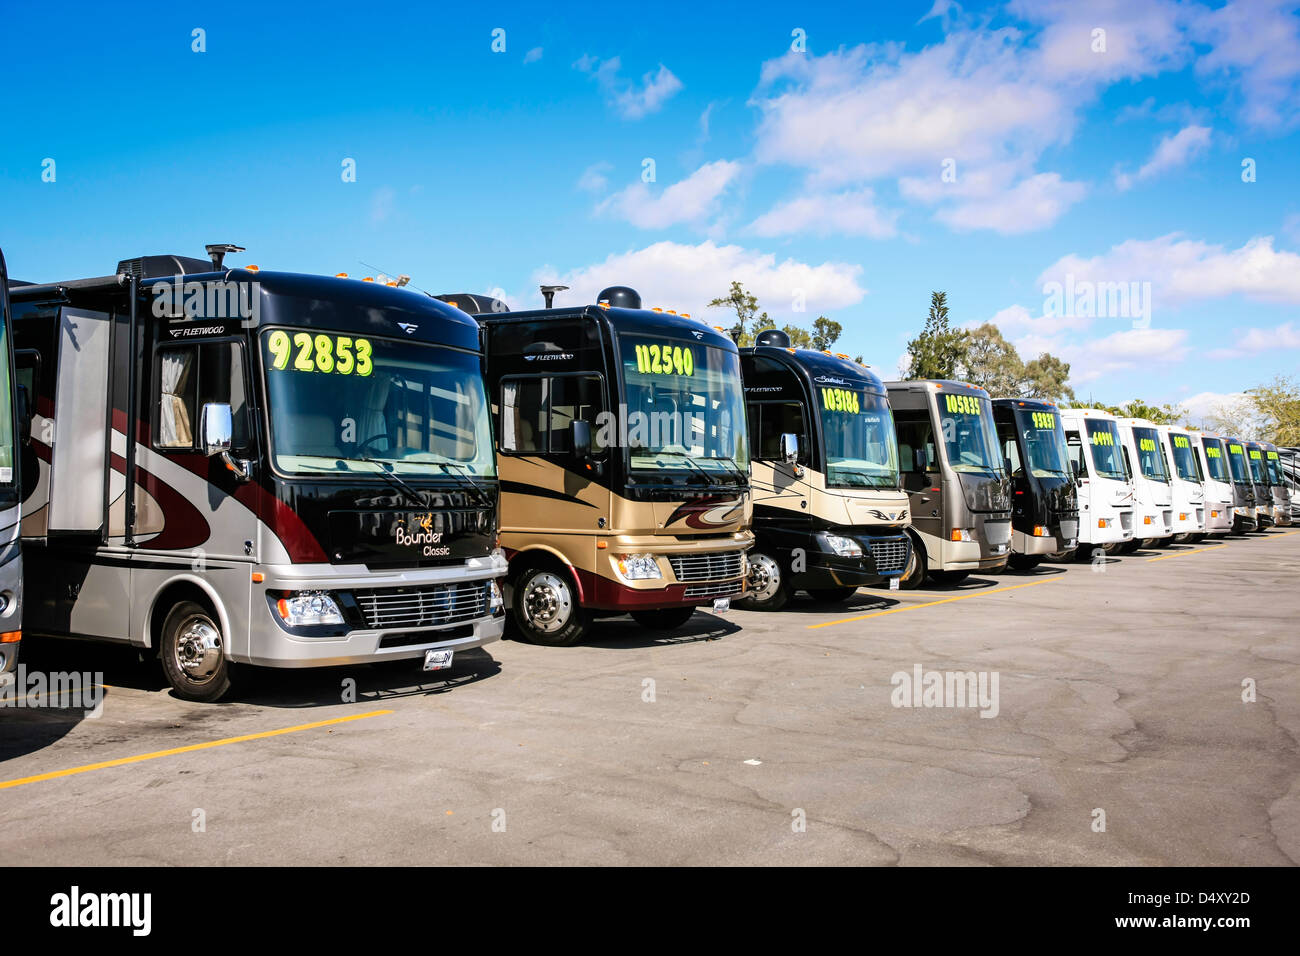 Class A Motorhomes on sale at an RV show in Sarasota Florida - Stock Image